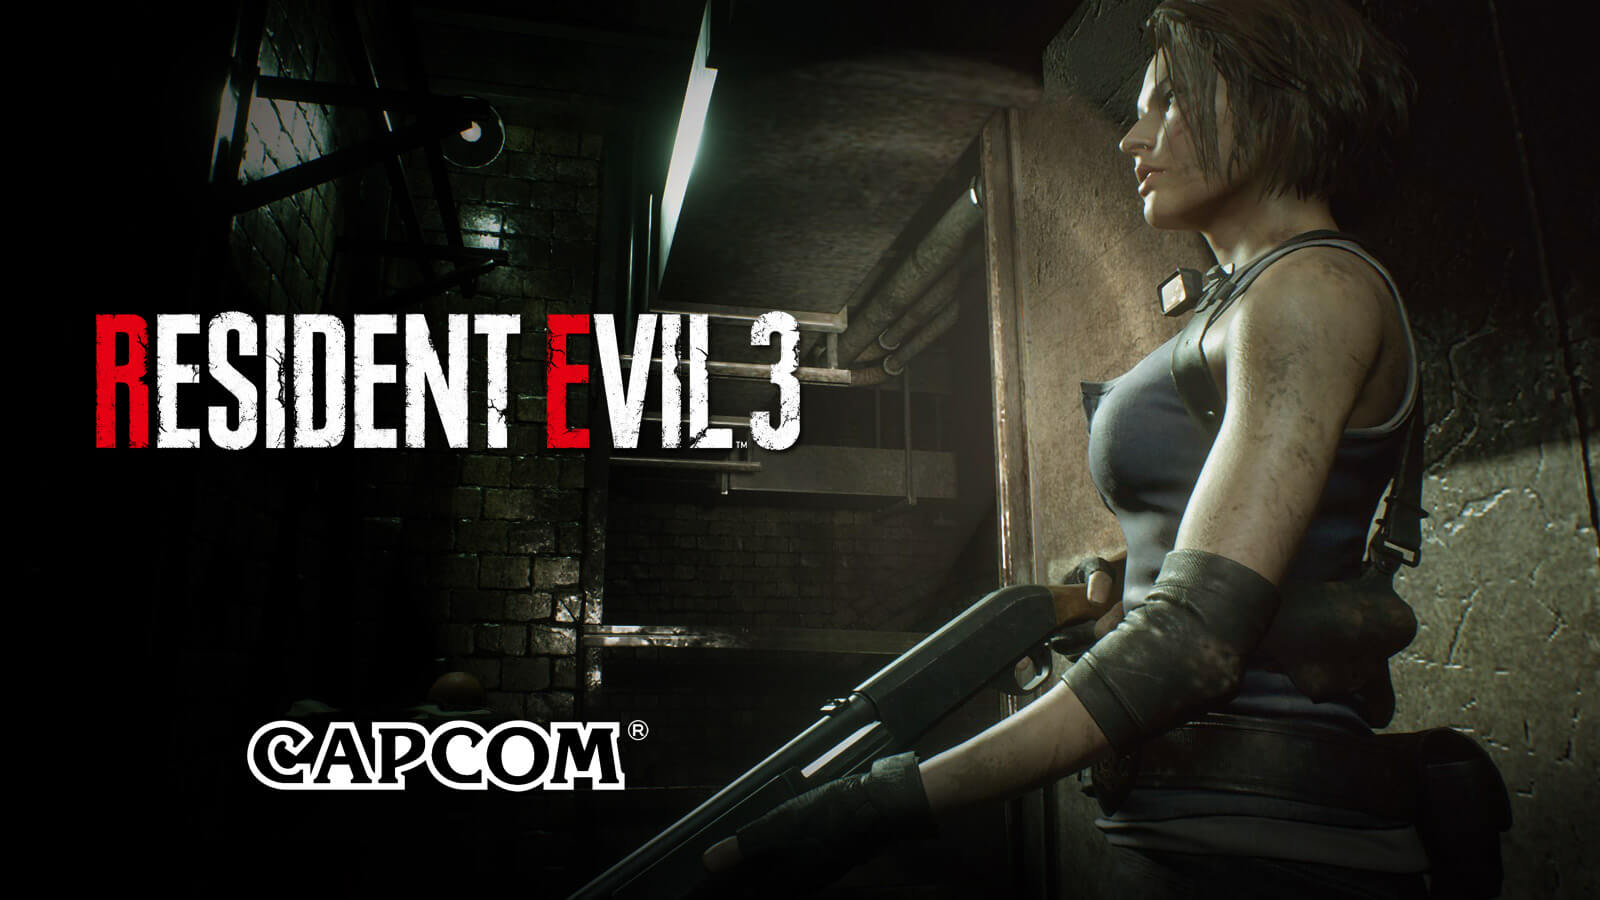 Early Access Look At The Resident Evil 3 Demo